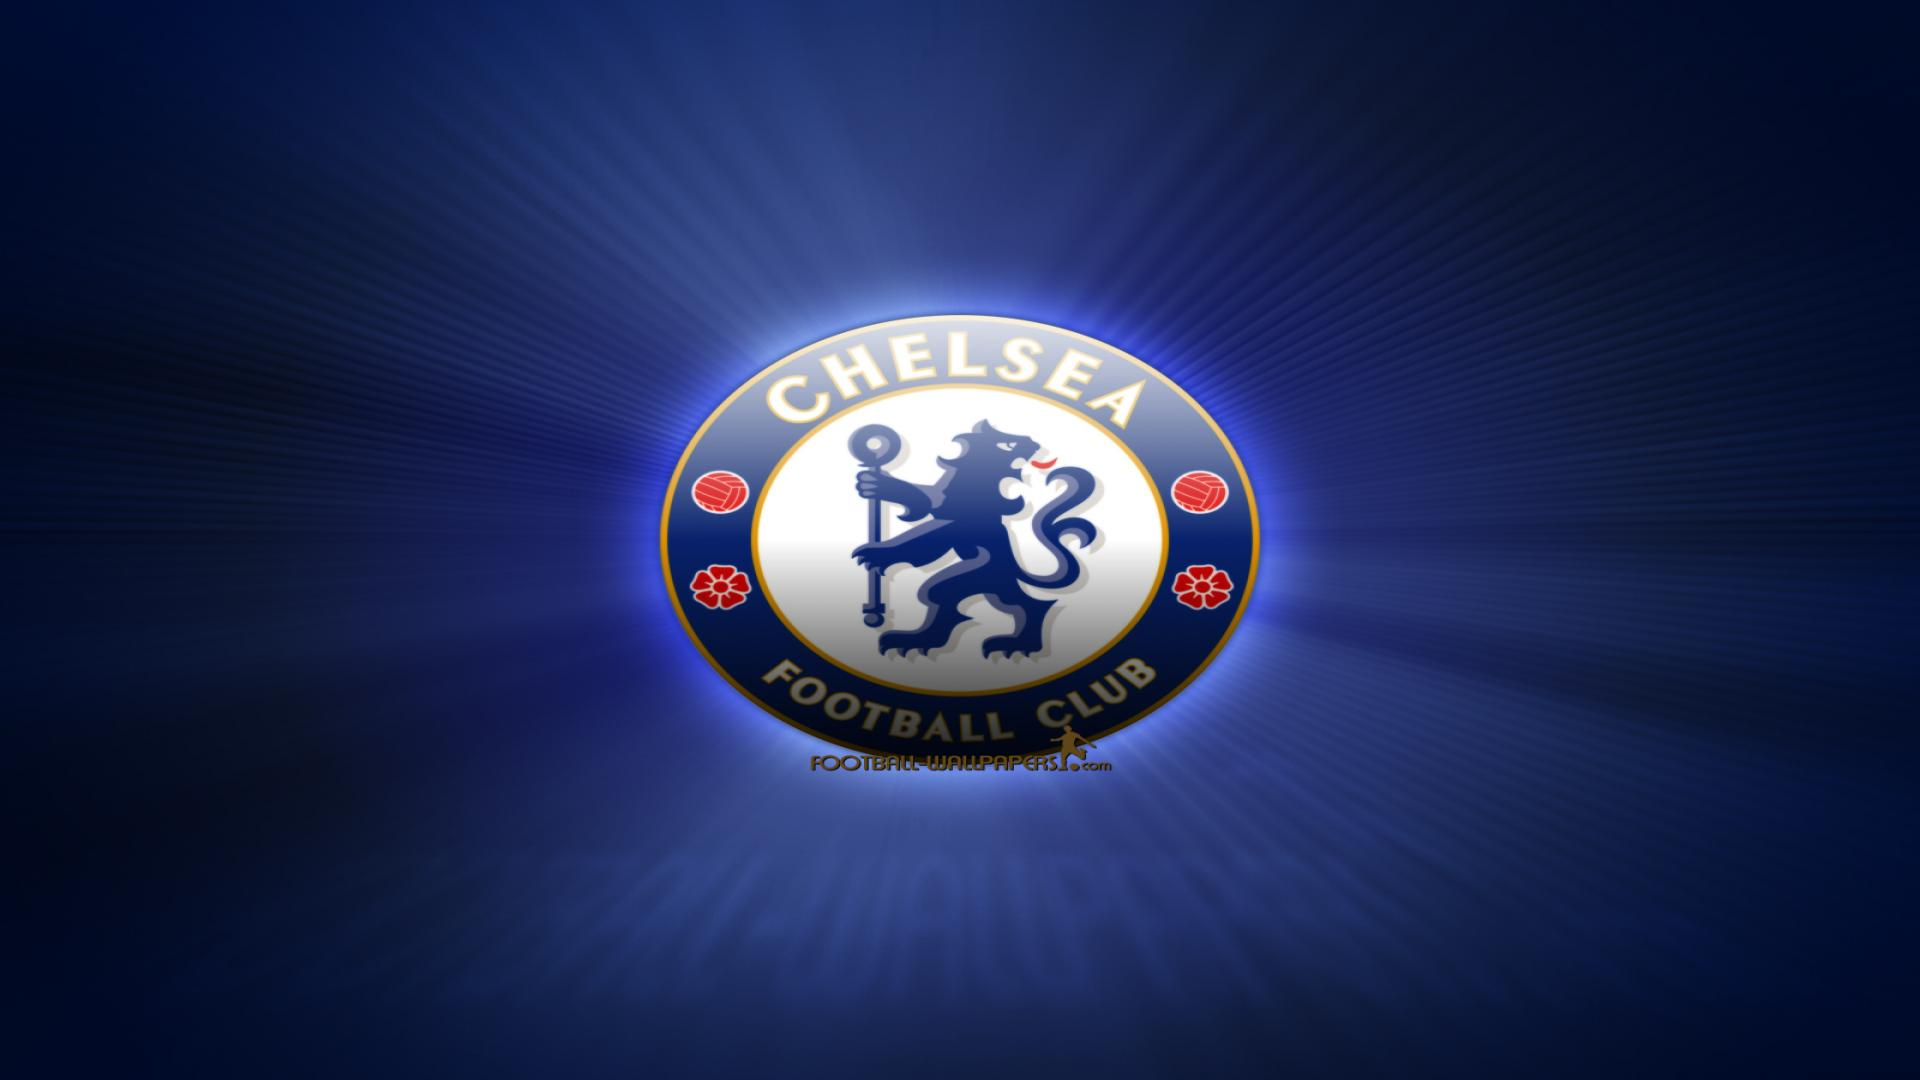 Chelsea Fc Wallpapers HD HD Wallpapers 1920x1080 Sport Wallpapers 1920x1080